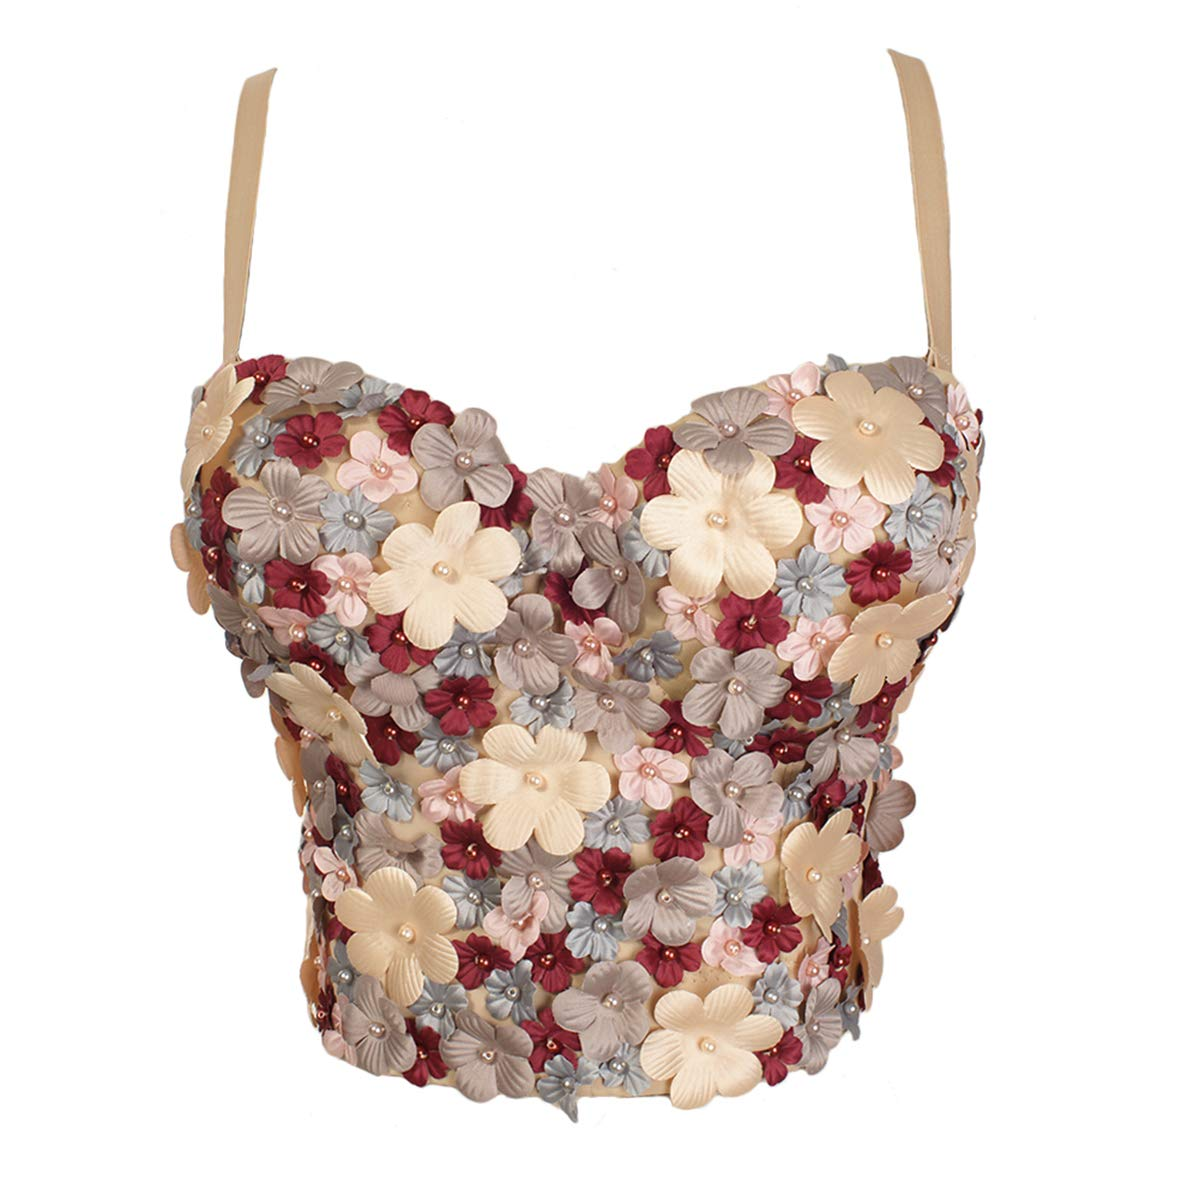 94cb5d8a8a Shesmoda appliques floral beads push up bralet camis womens jpg 1200x1200  Beaded bustier calypso corset